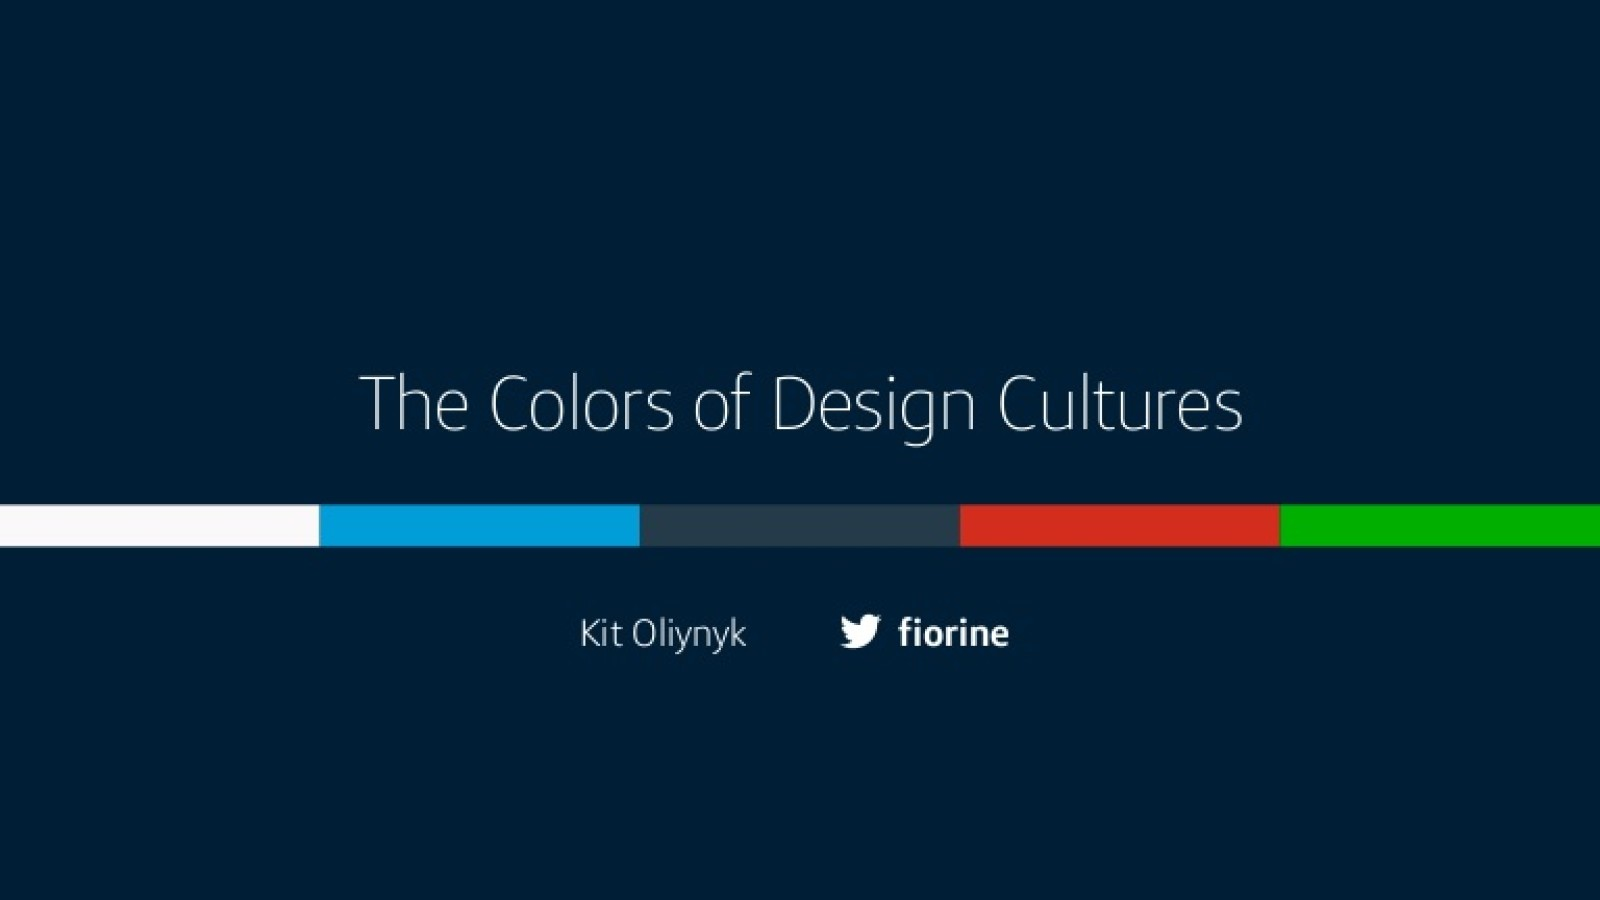 The Colors of Design Cultures